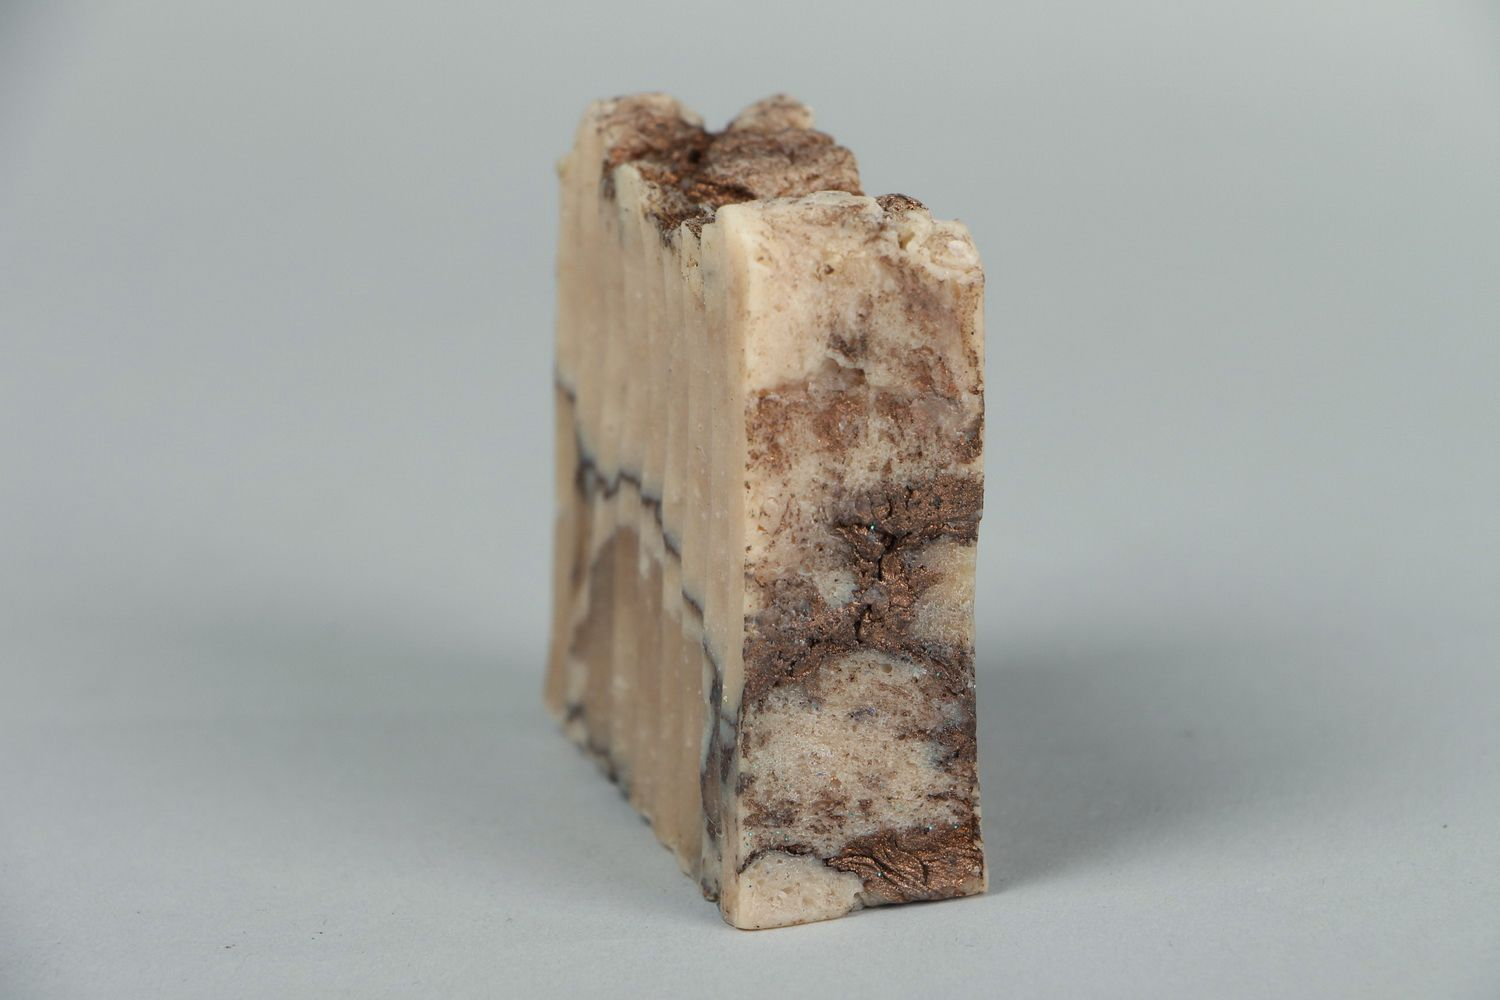 Handmade soap with almond oil photo 2